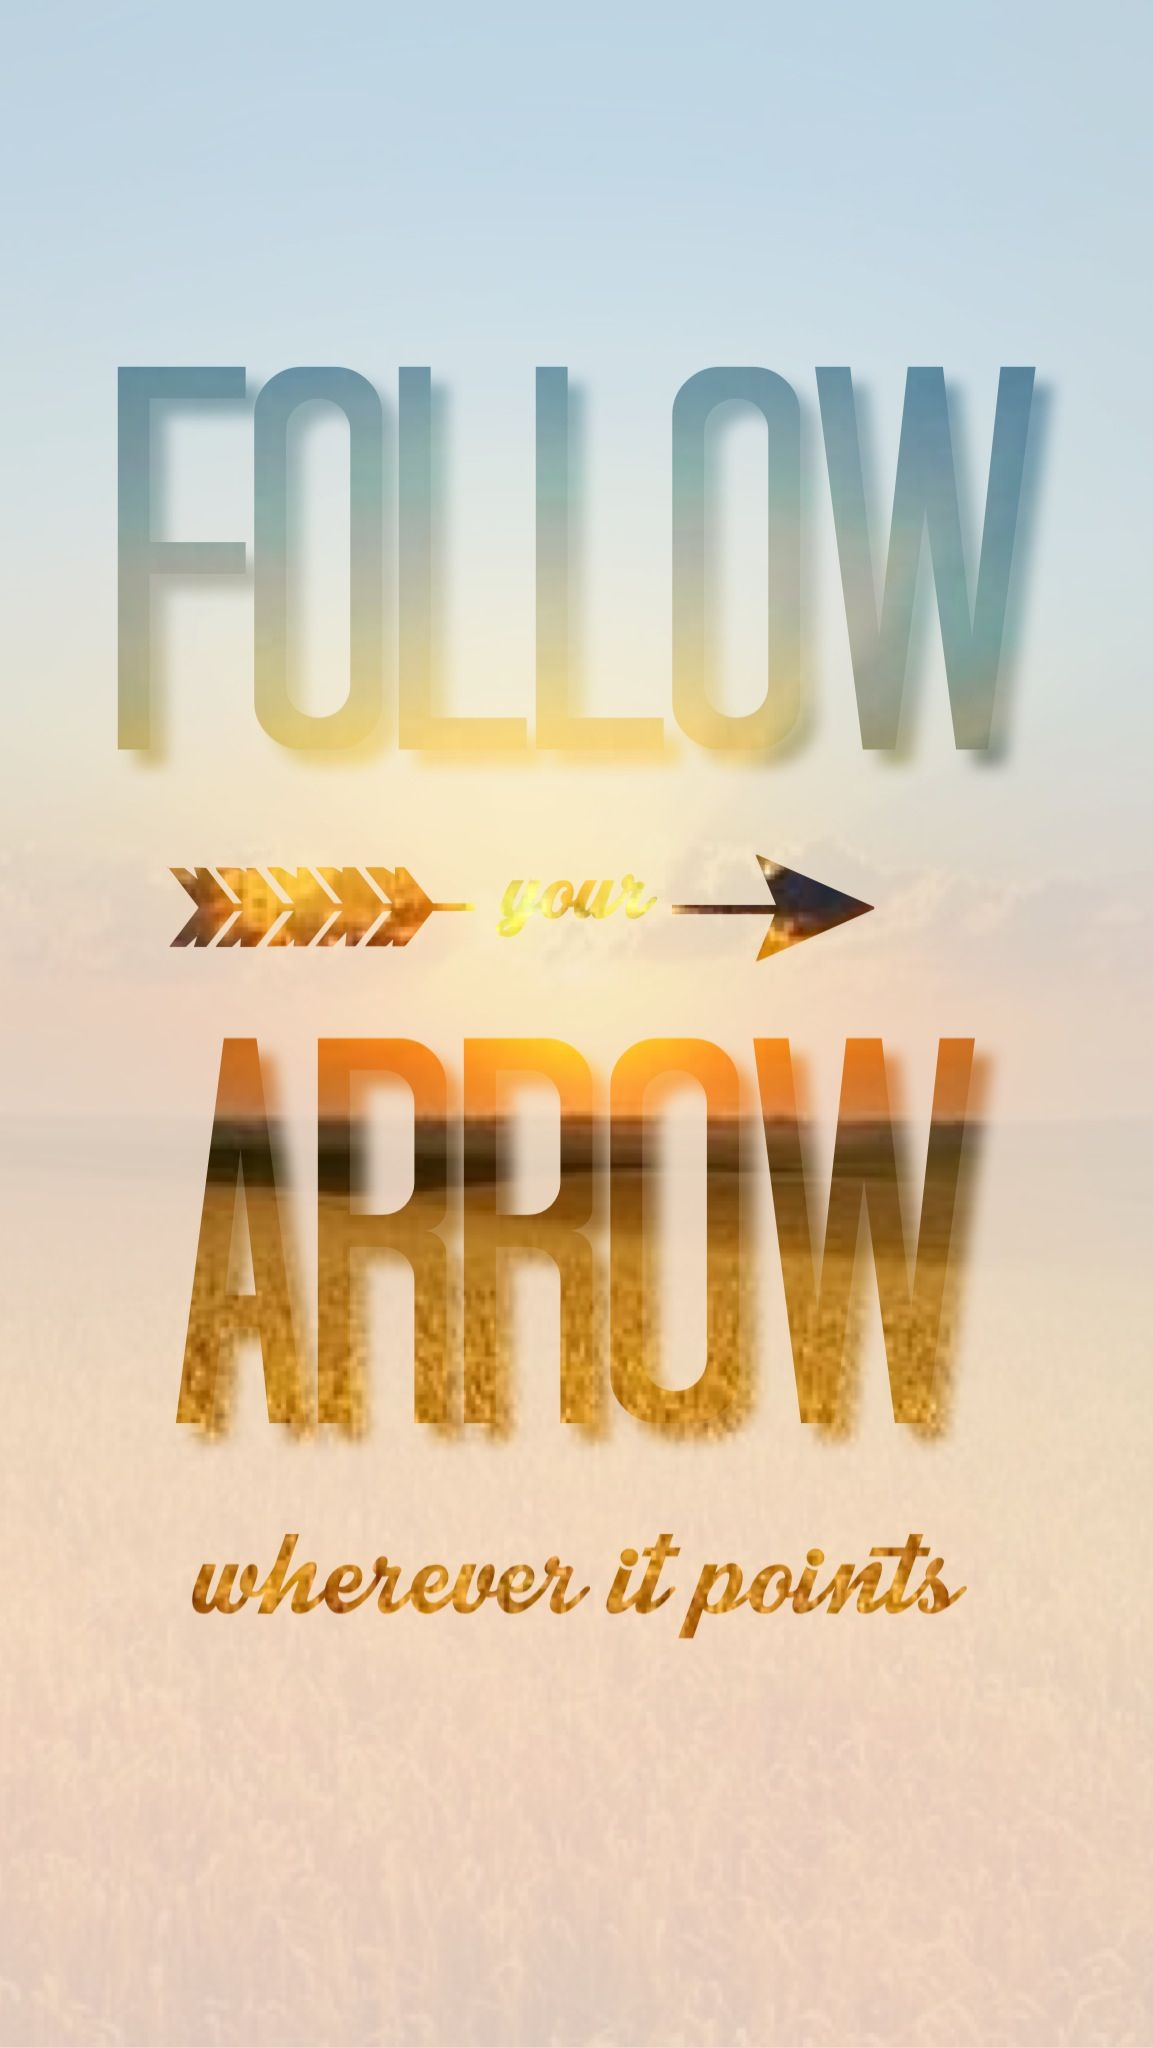 Follow your arrow wherever it points follow your arrow by kacey musgraves lyrics country - Follow wallpaper ...